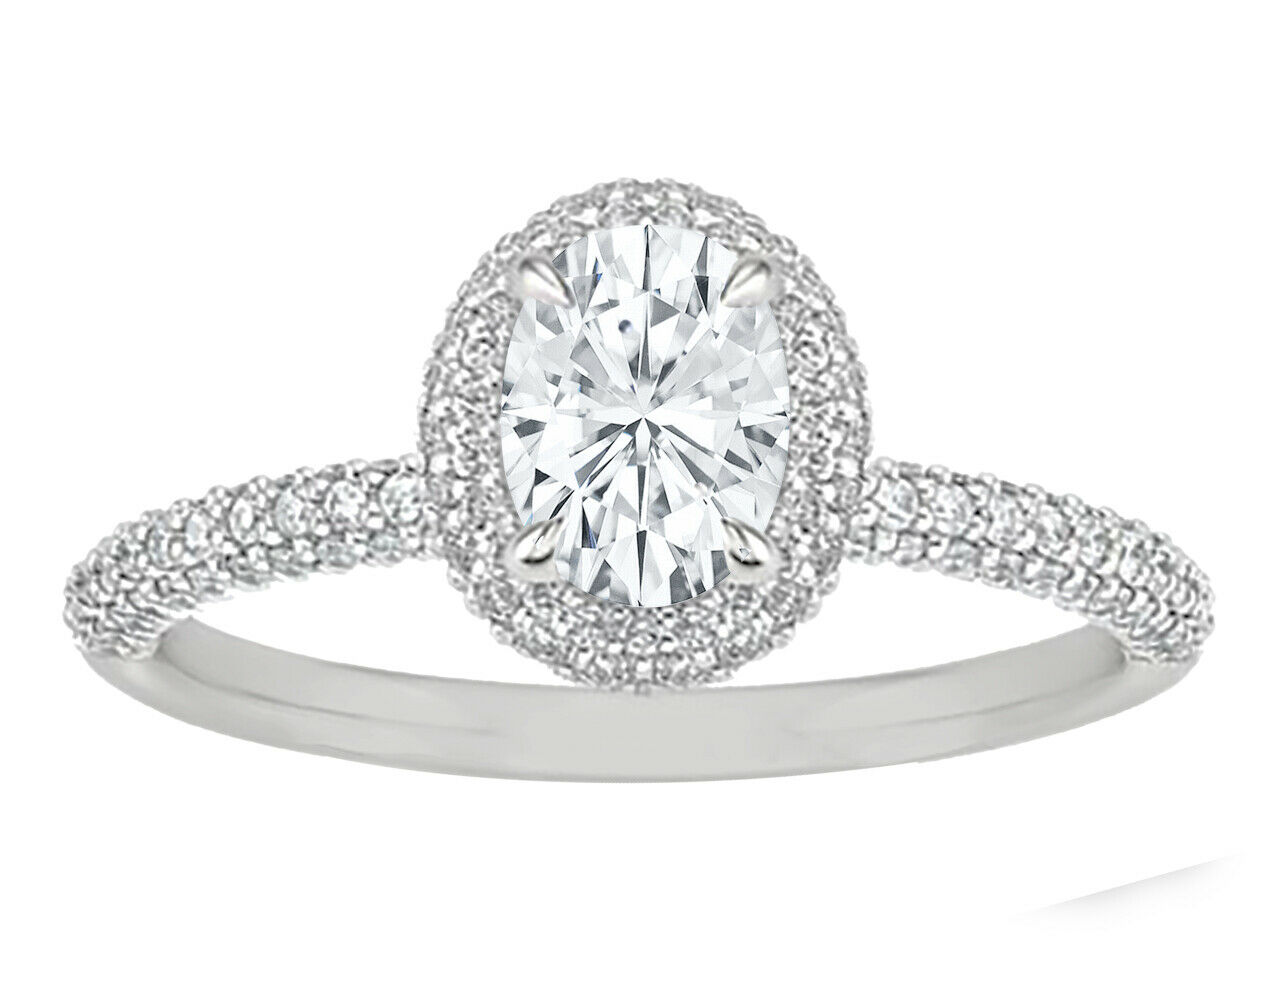 GIA Certified Diamond Engagement Ring 2.52 carat total Oval & Round Cut 14k Gold